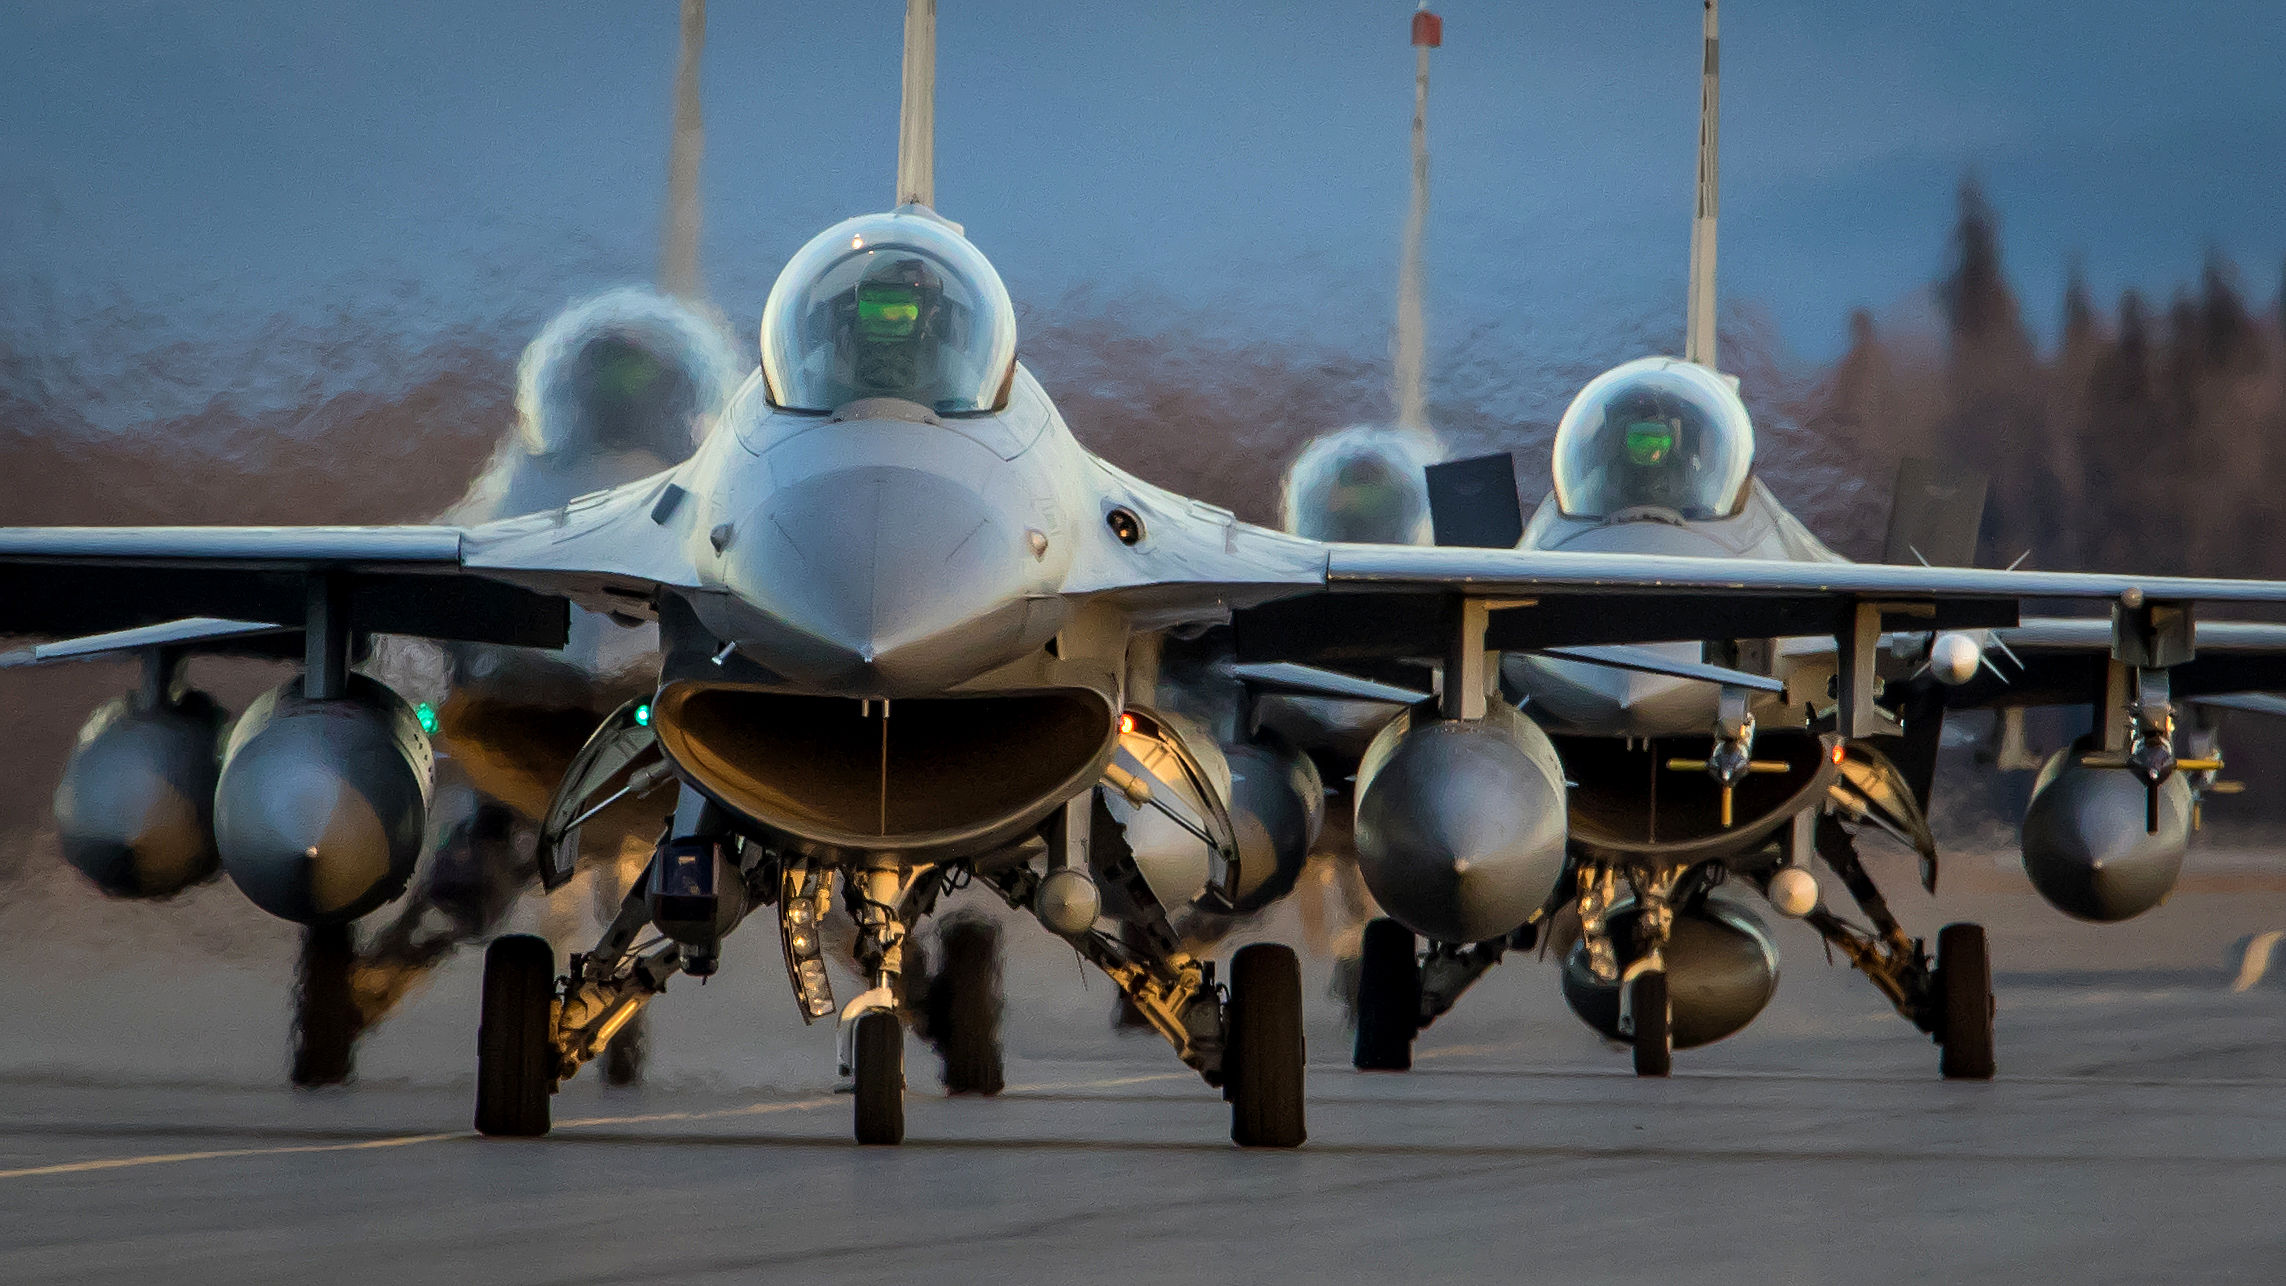 F16_OS_PAEI_17OCT16_TAXI_0832HRc